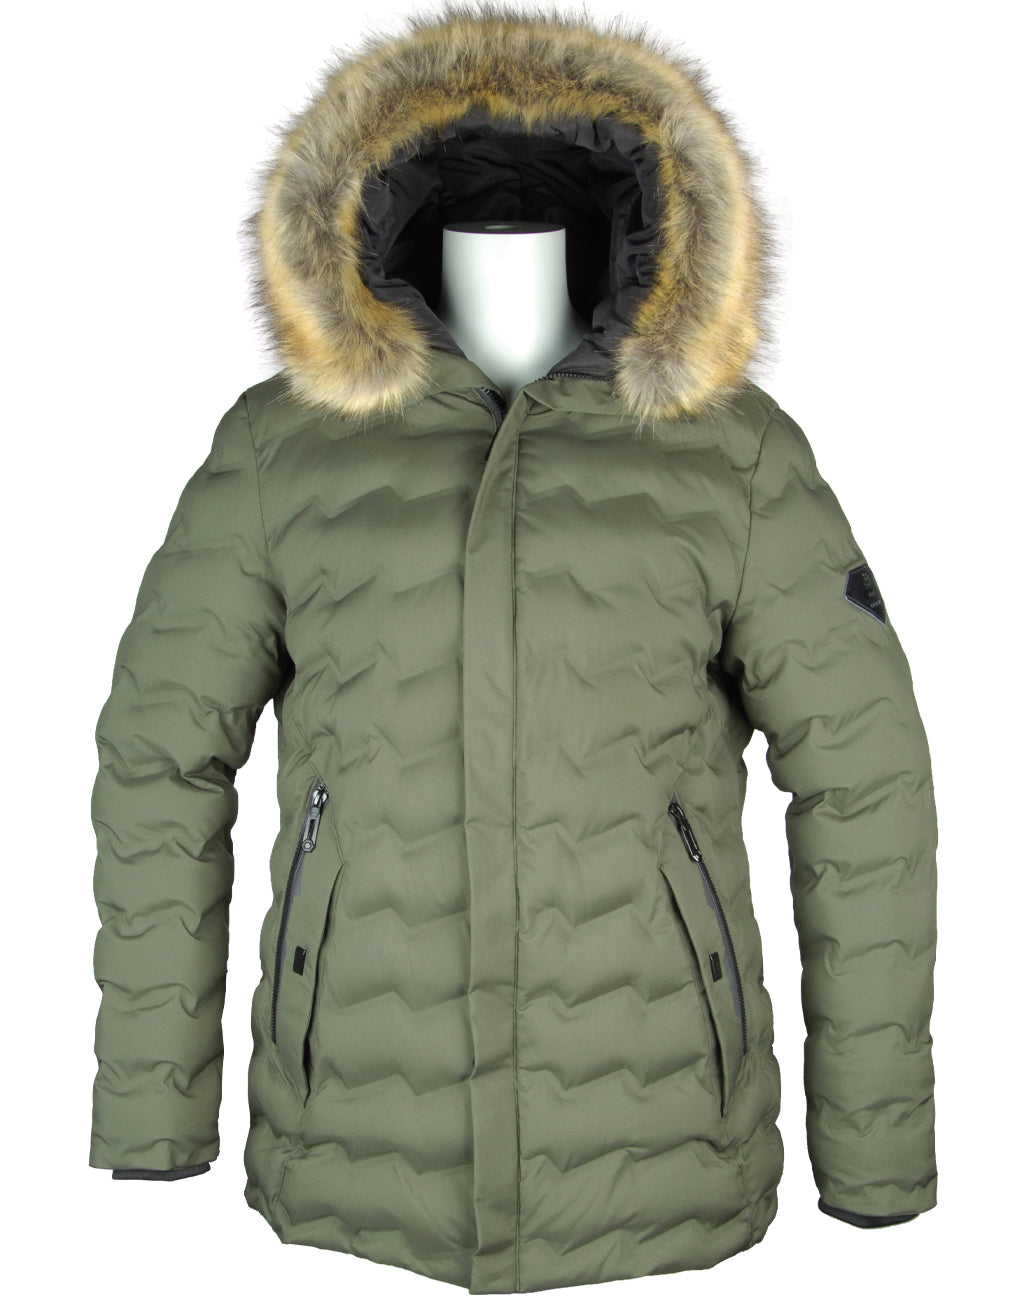 Women's Misty Mountain Helix Jacket